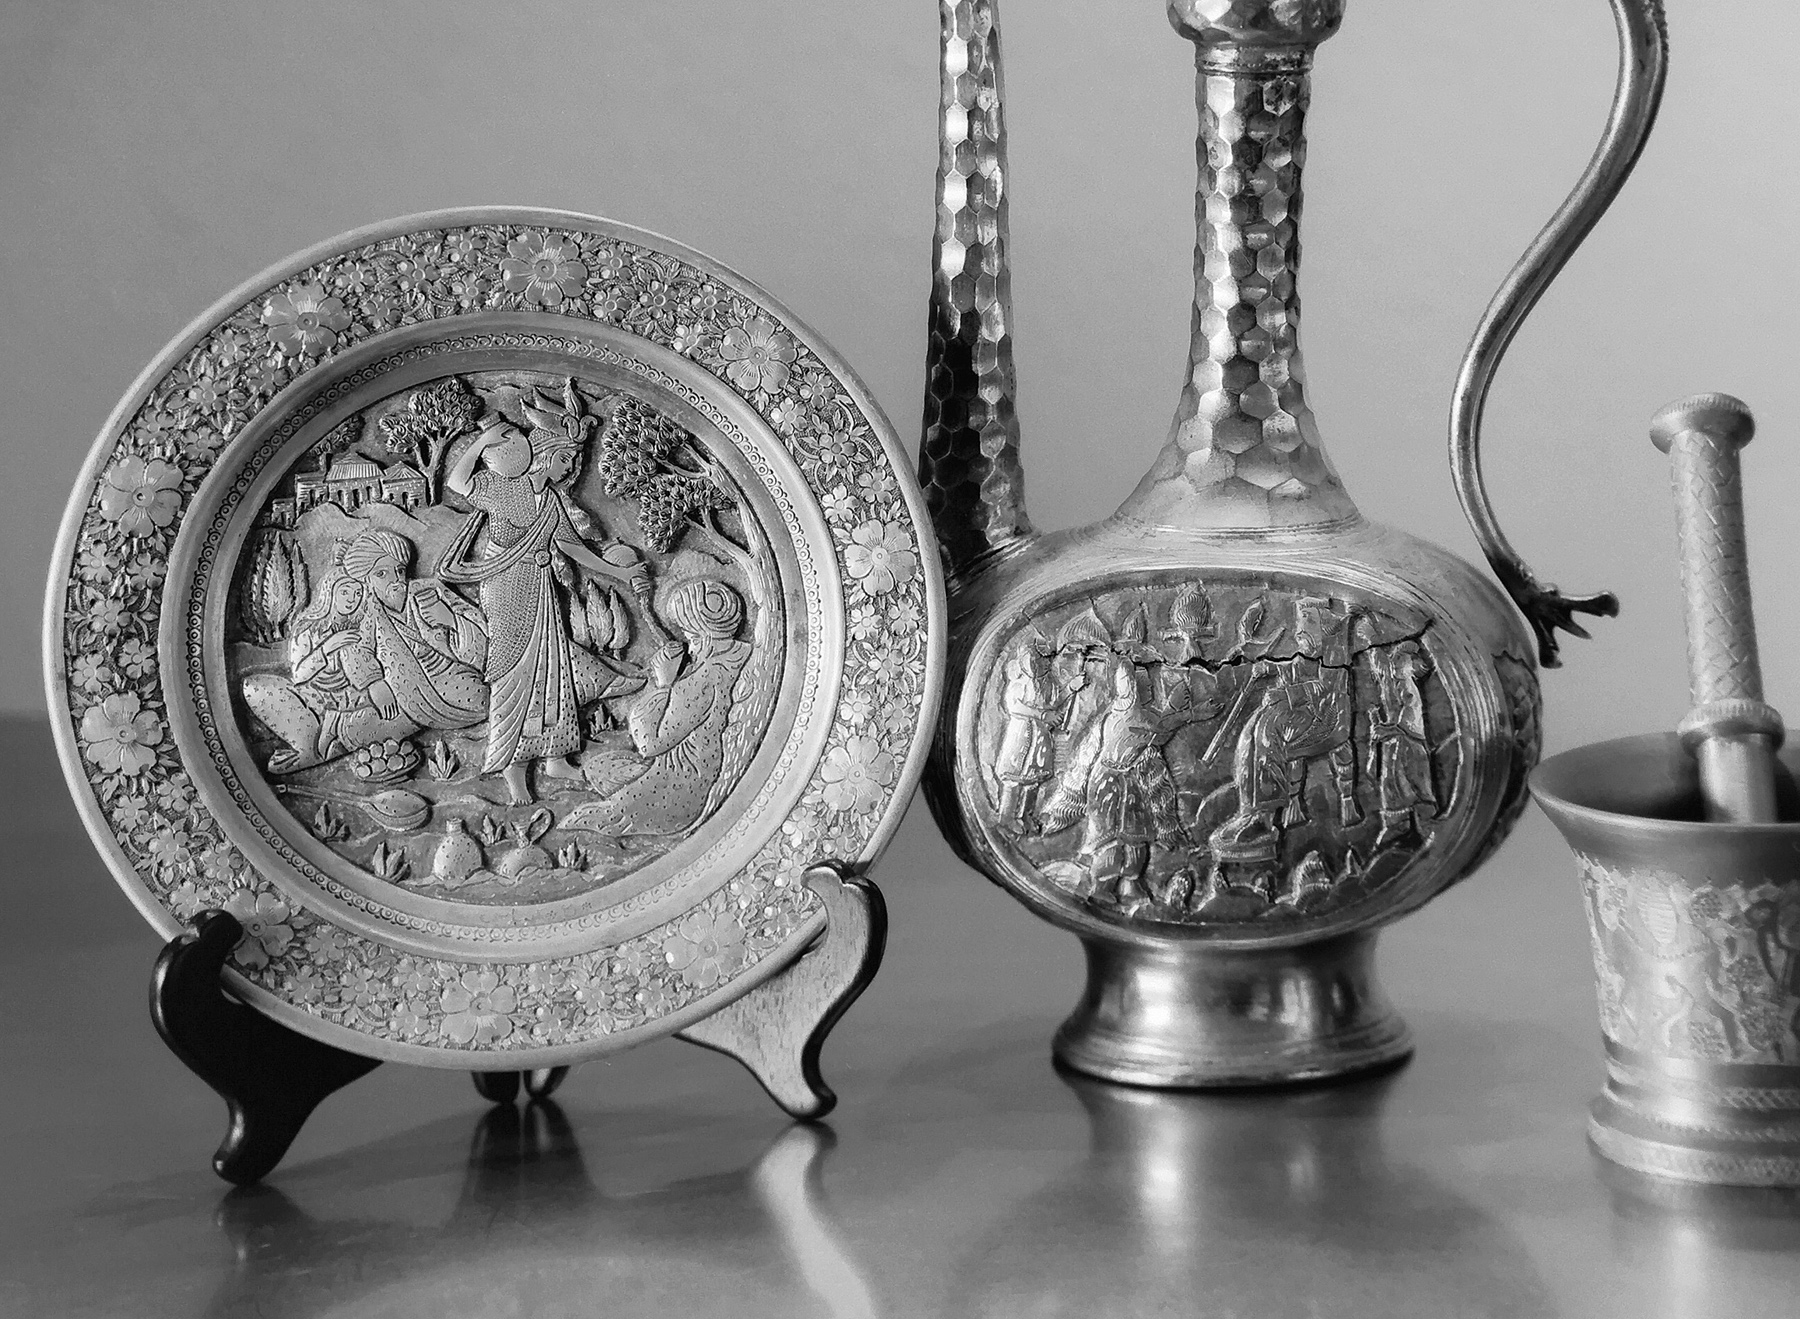 Table Top Objects from Iran by bensonga in bensonga